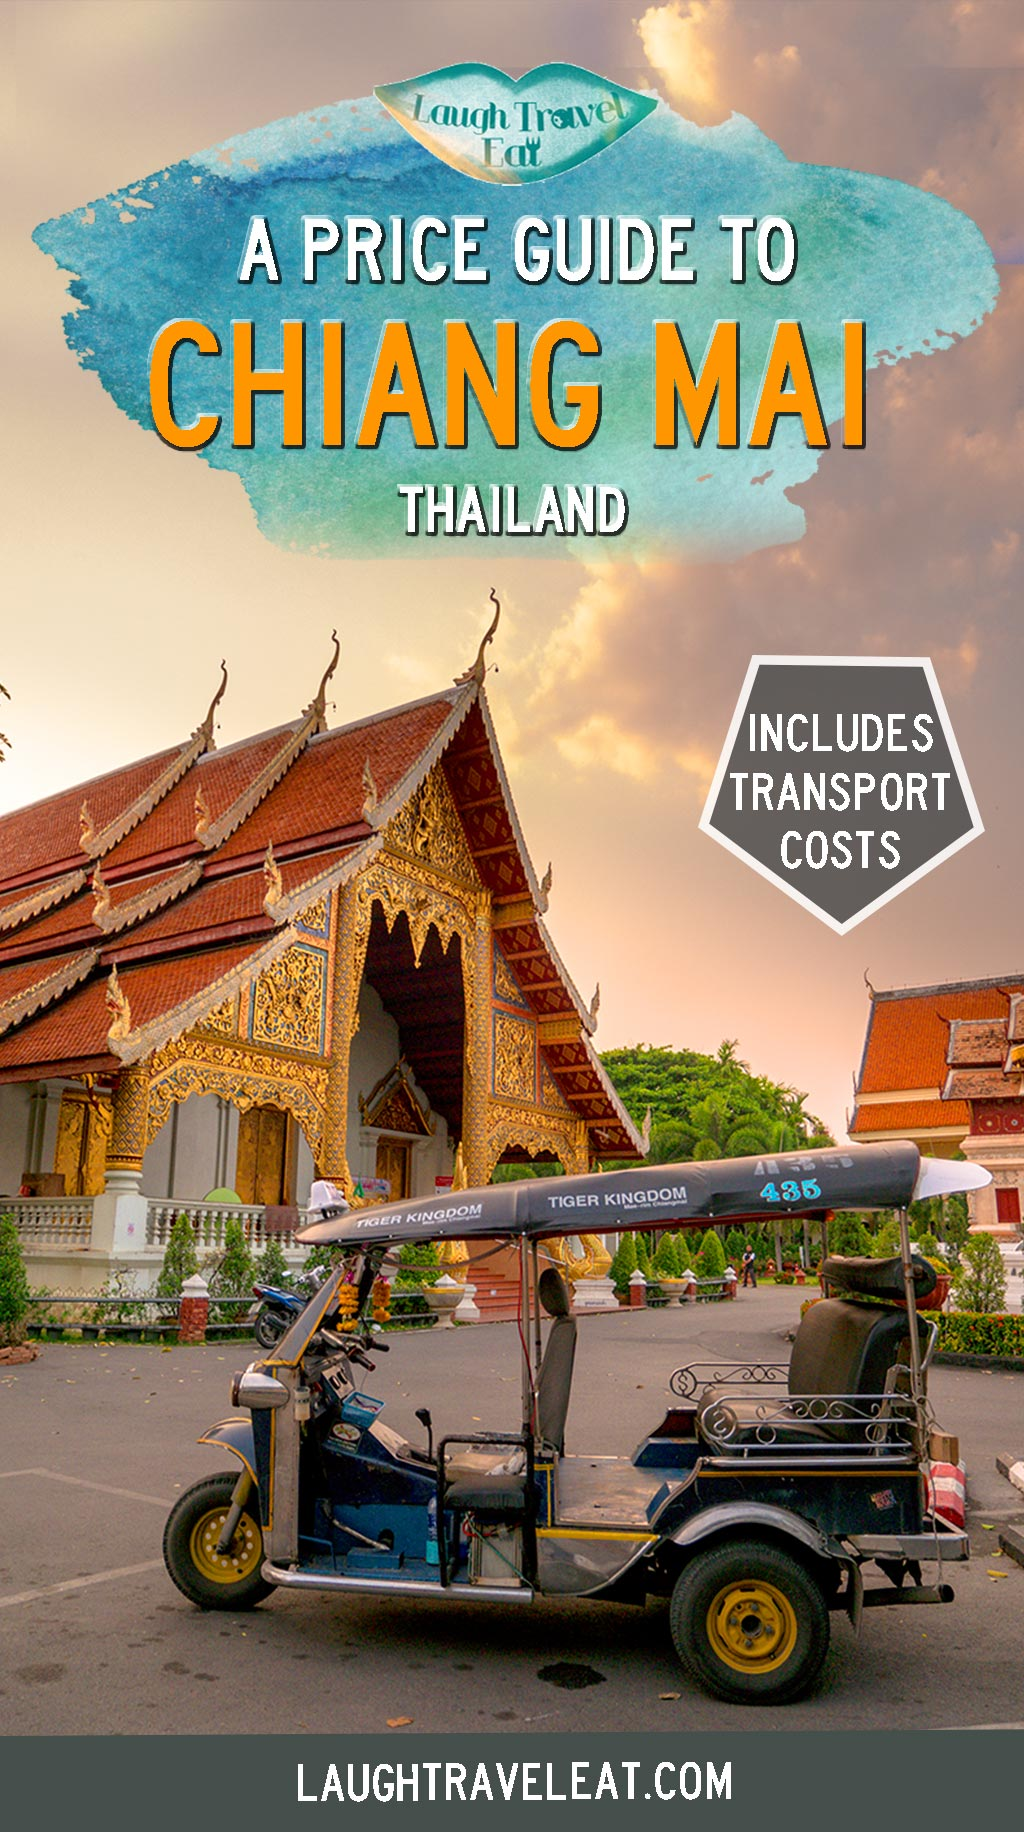 The ultimate price guide to Chiang Mai's food, transport, massage, clothes, and souvenir, making sure that you wouldn't be scammed in markets #ChiangMai #Thailand #PriceGuide